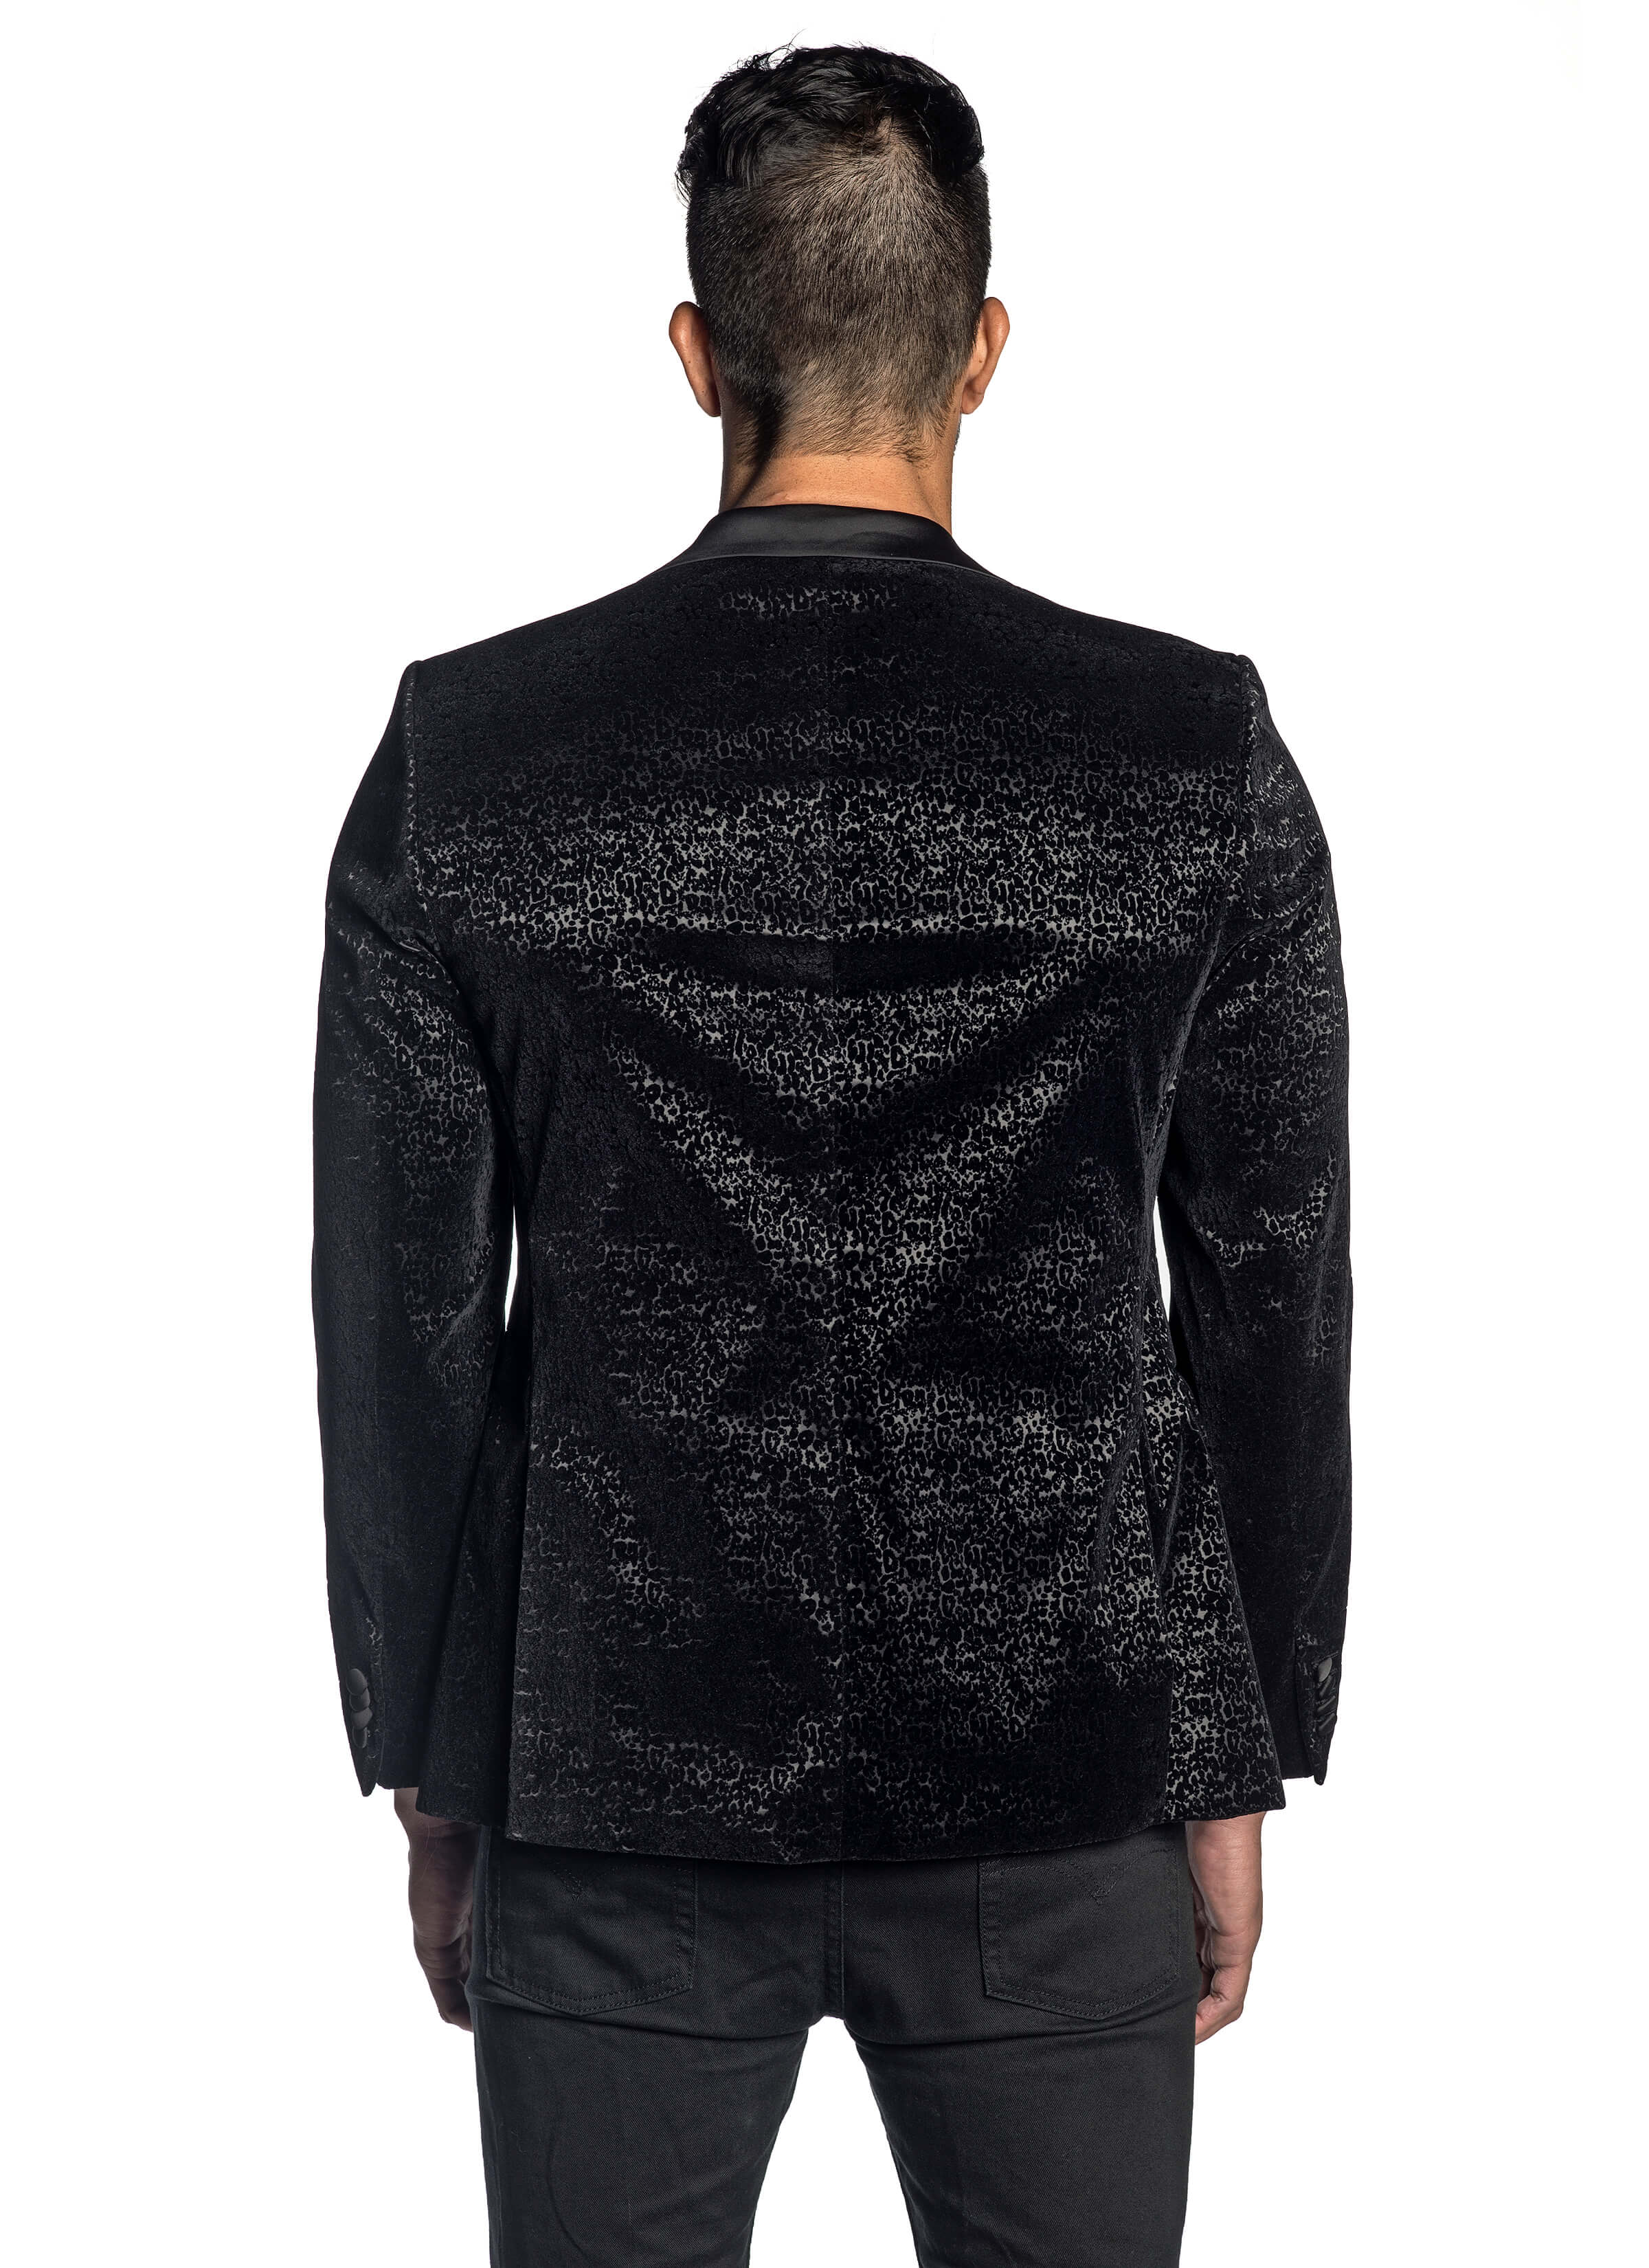 Black Flocking Blazer with Satin Lapel LAX-001 - Jared Lang